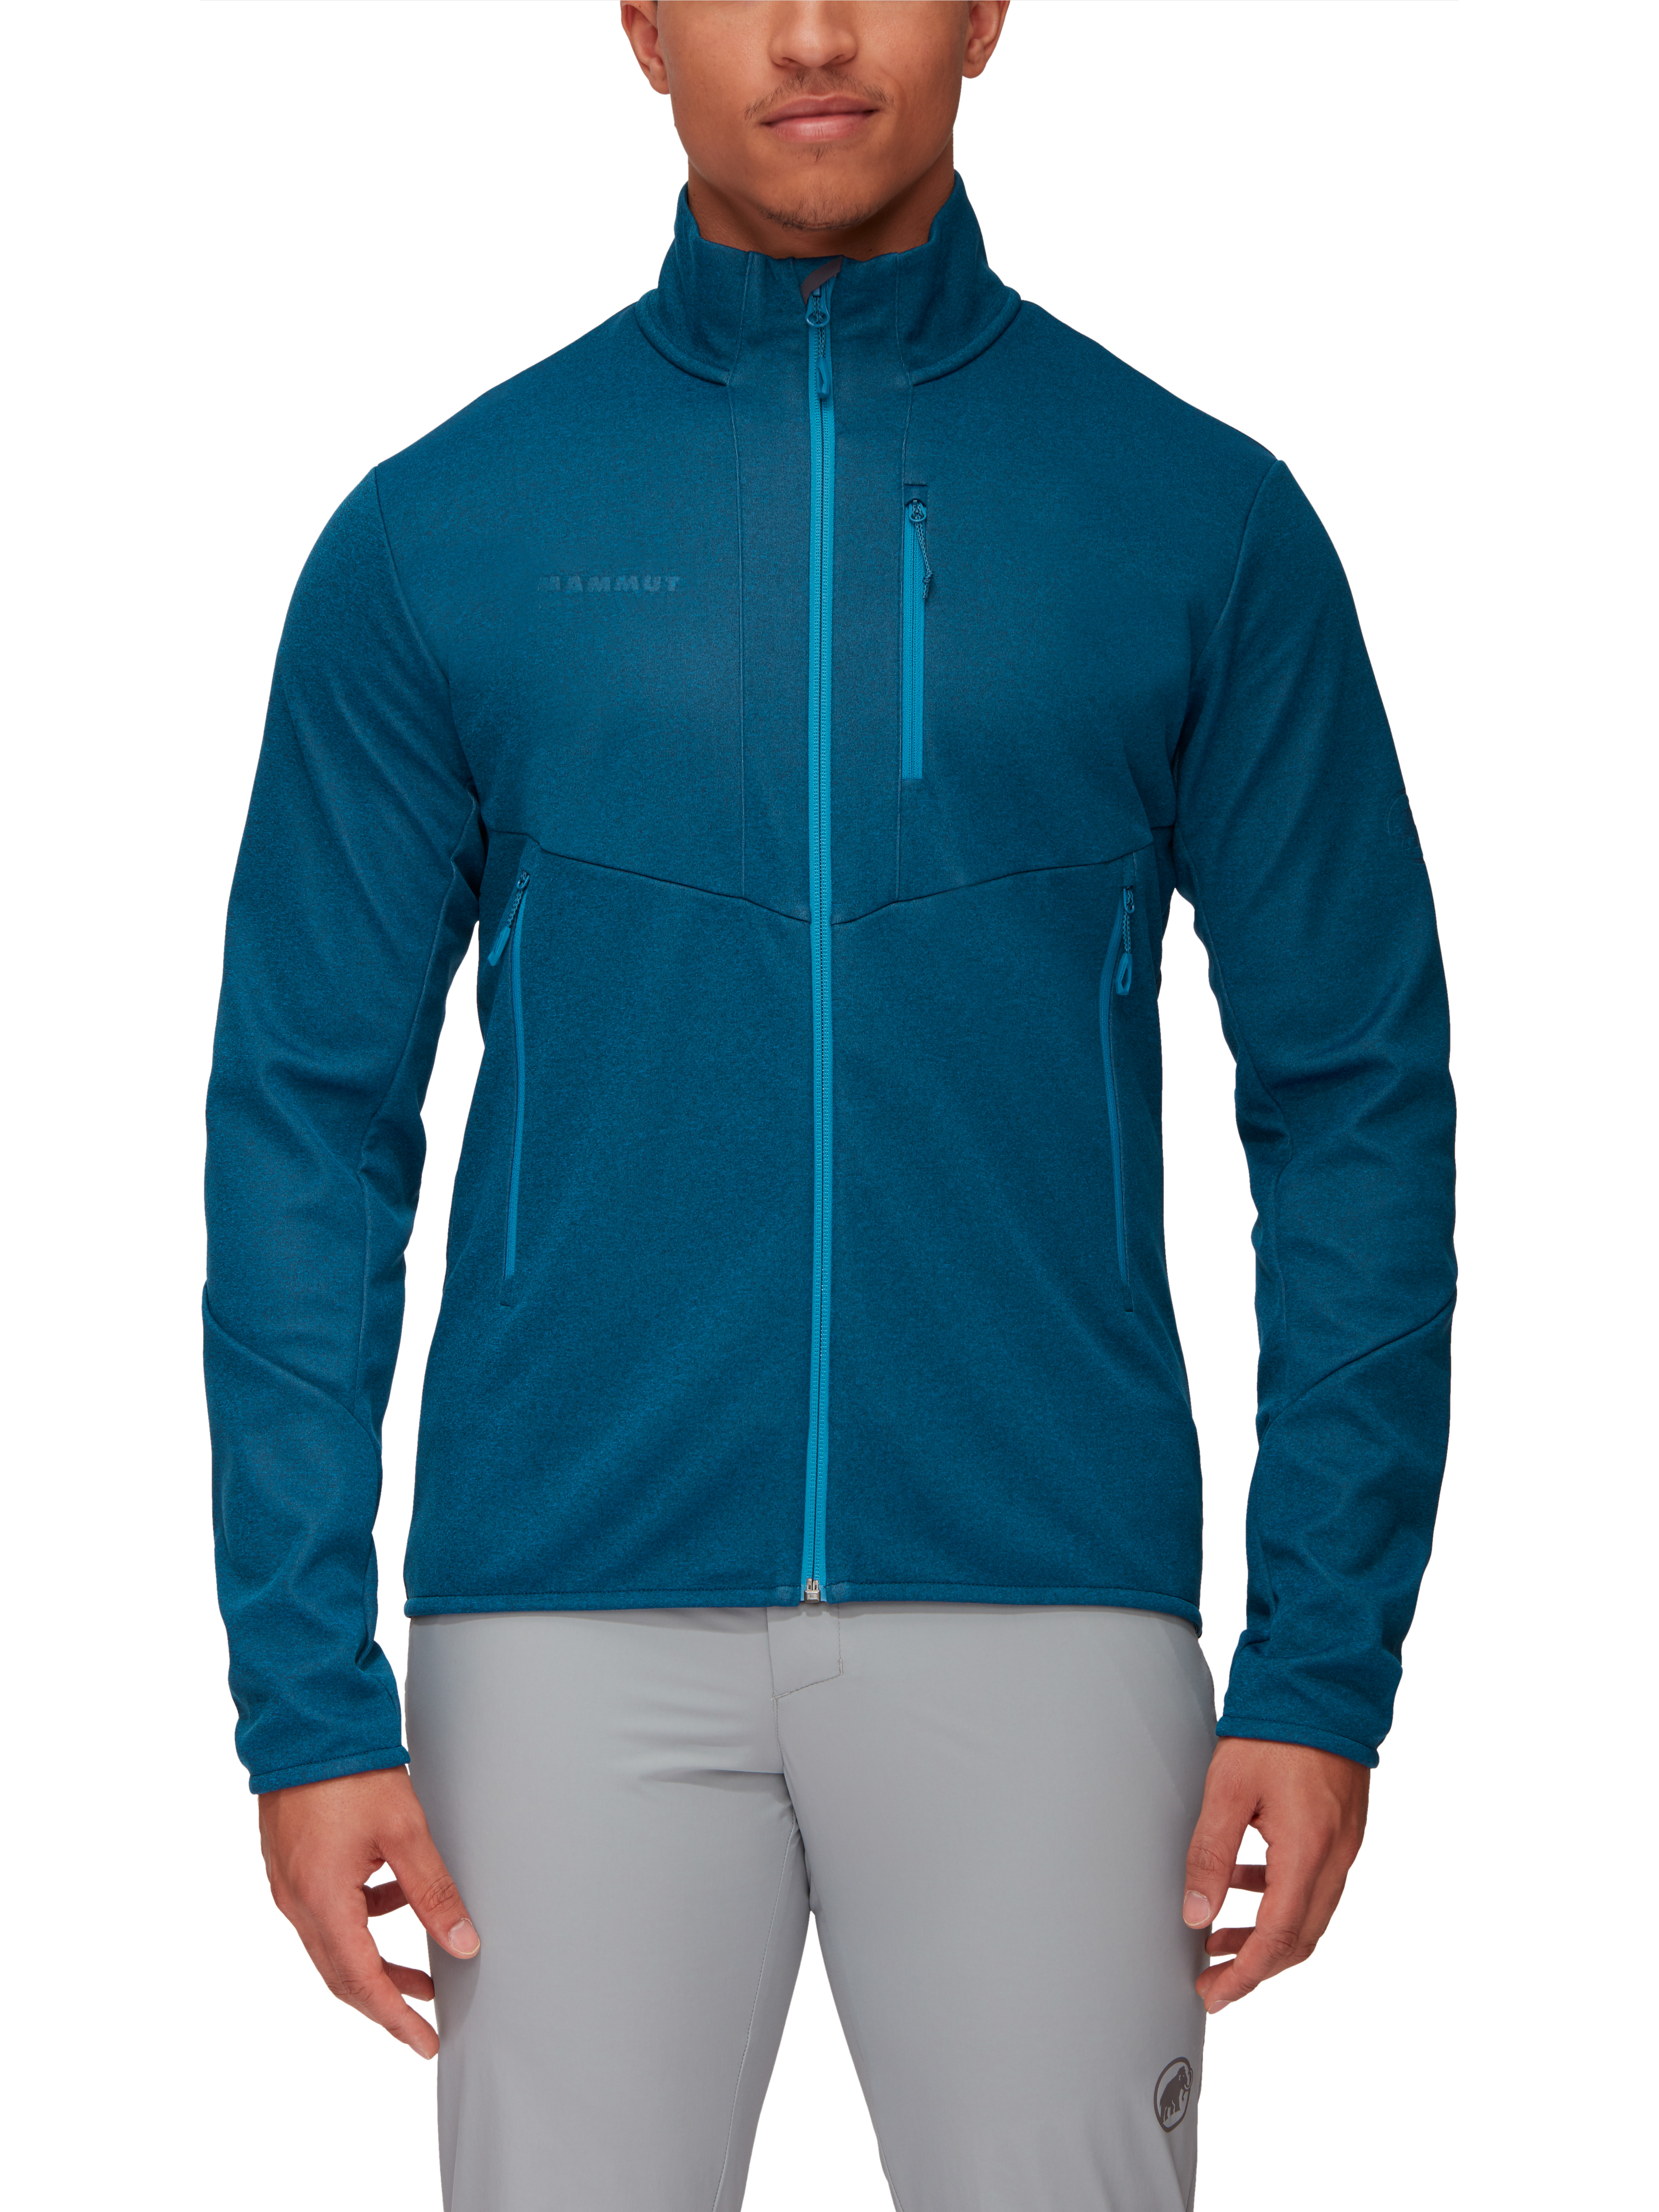 Ultimate VI SO Jacket Men product image